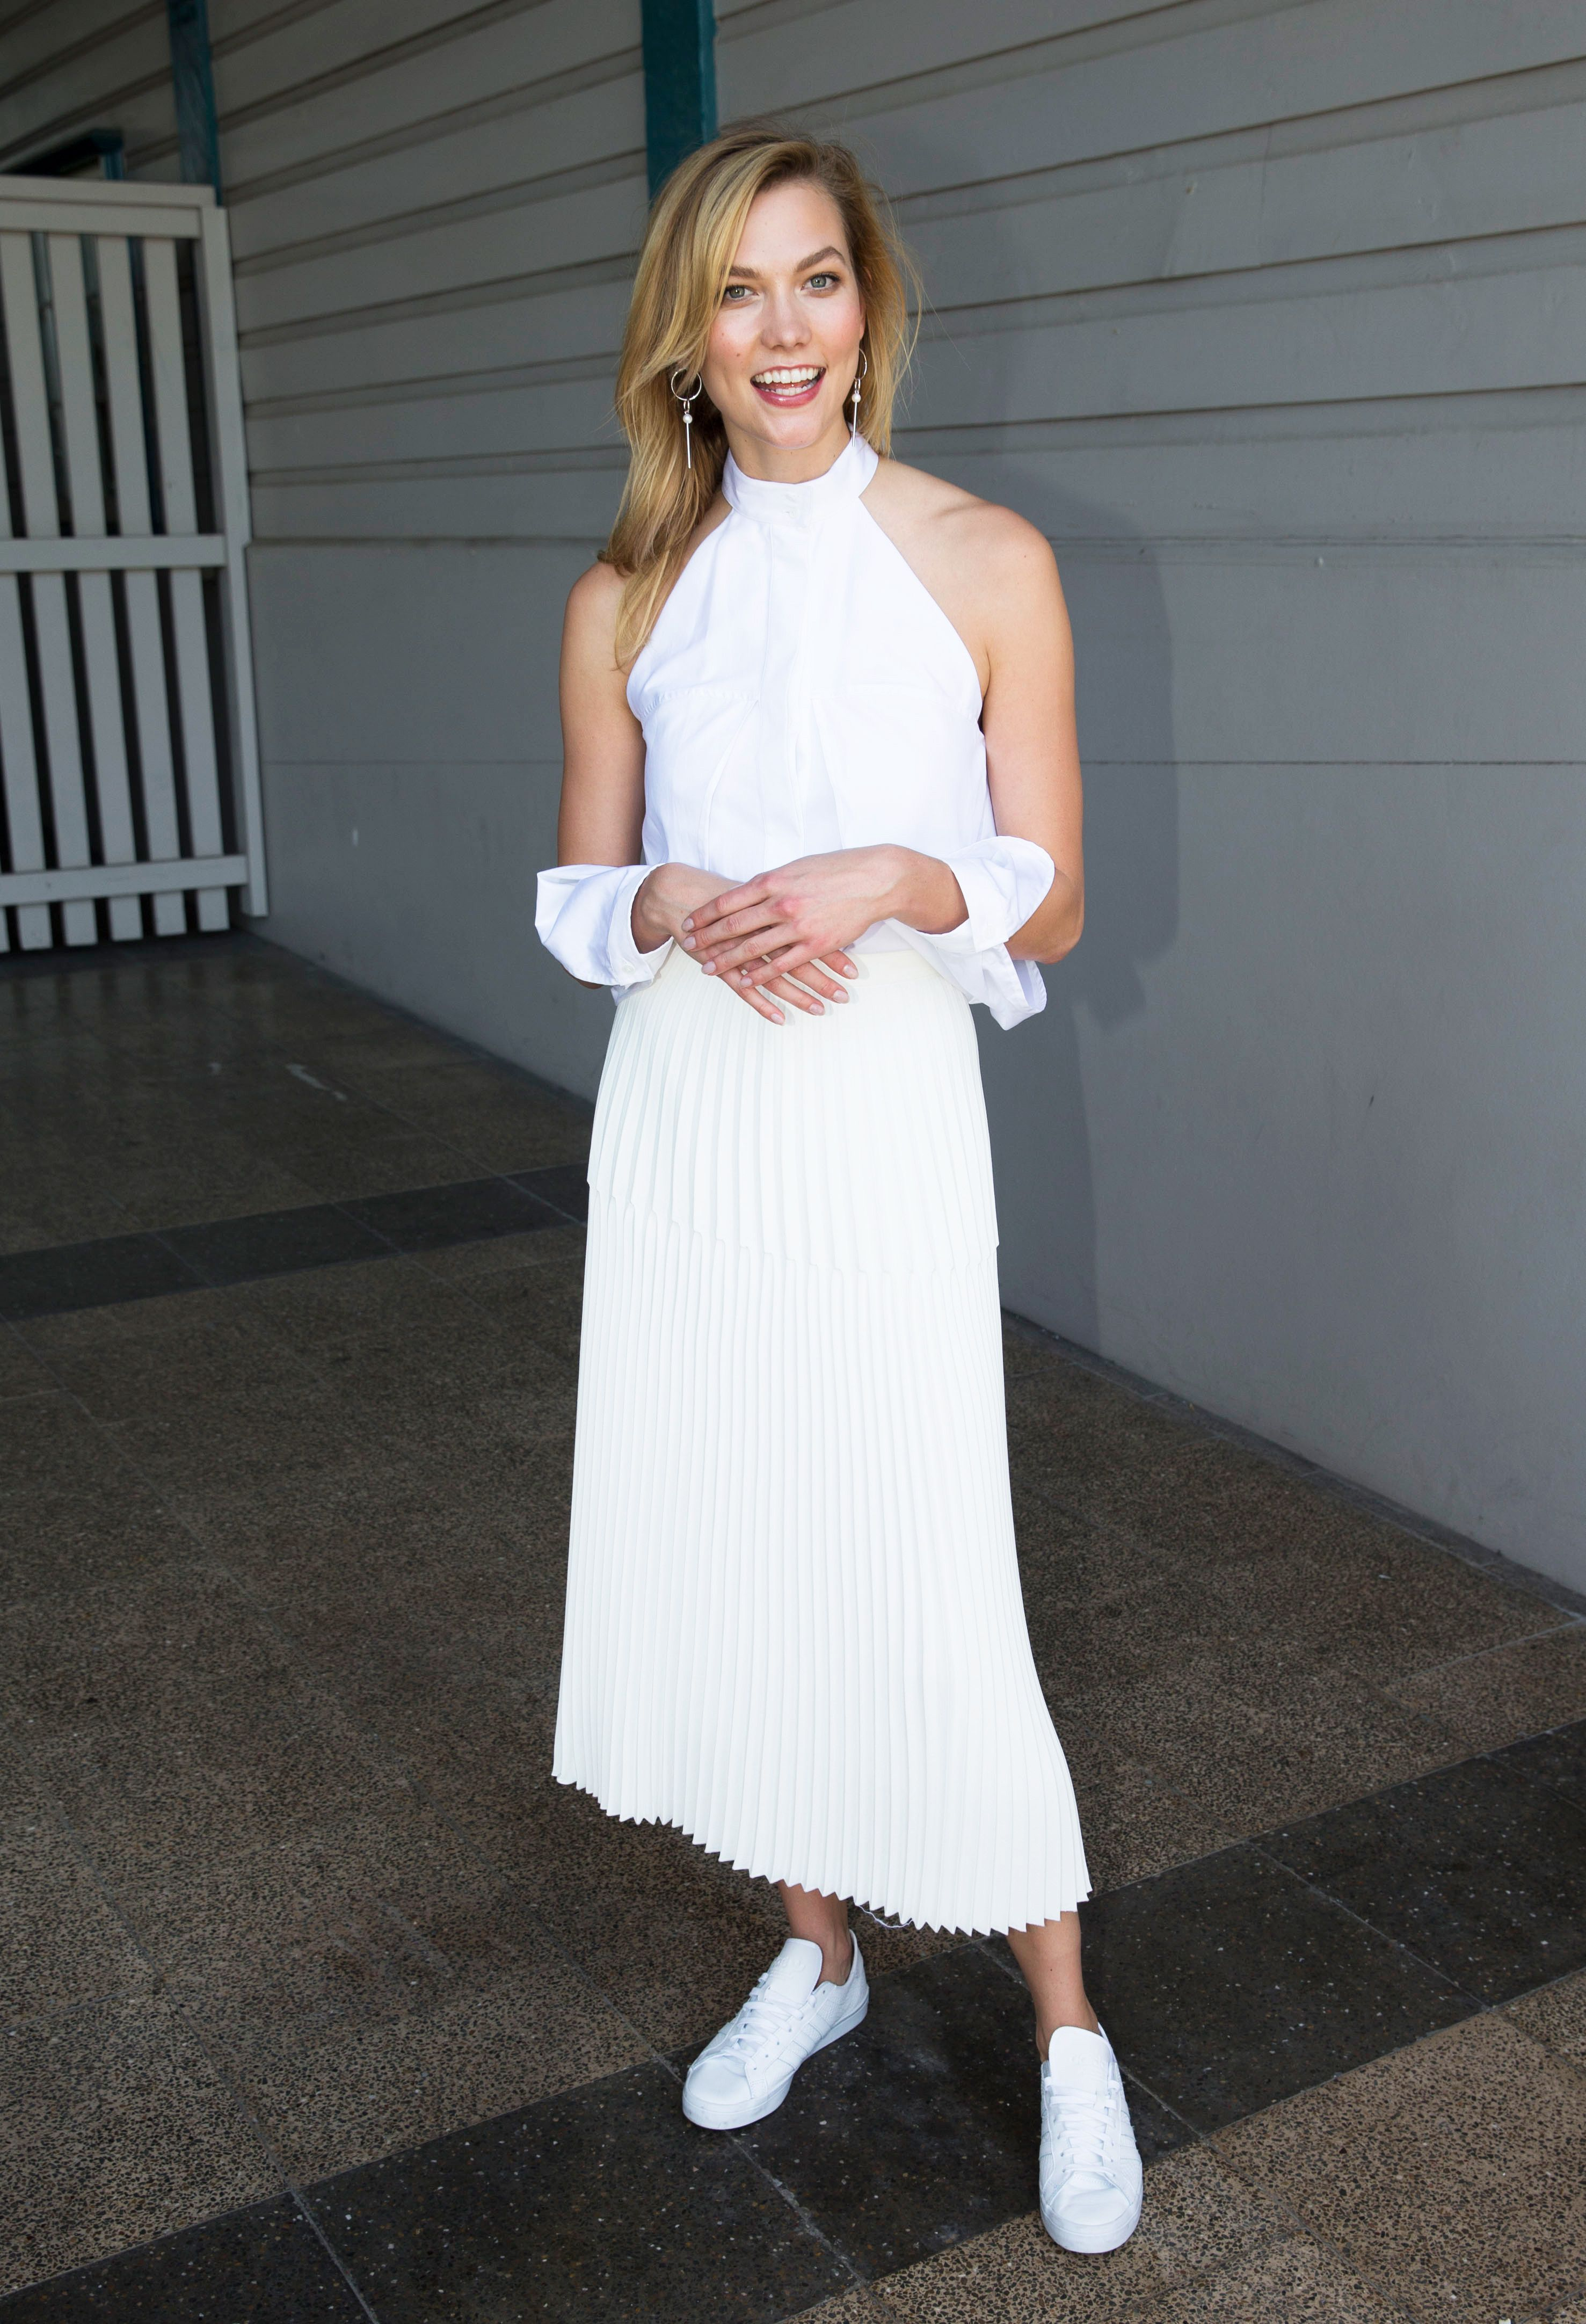 Karlie Kloss is the queen of making sneakers work with dressers. That plus one major shirt trend means you're going to want to see and shop this ASAP.